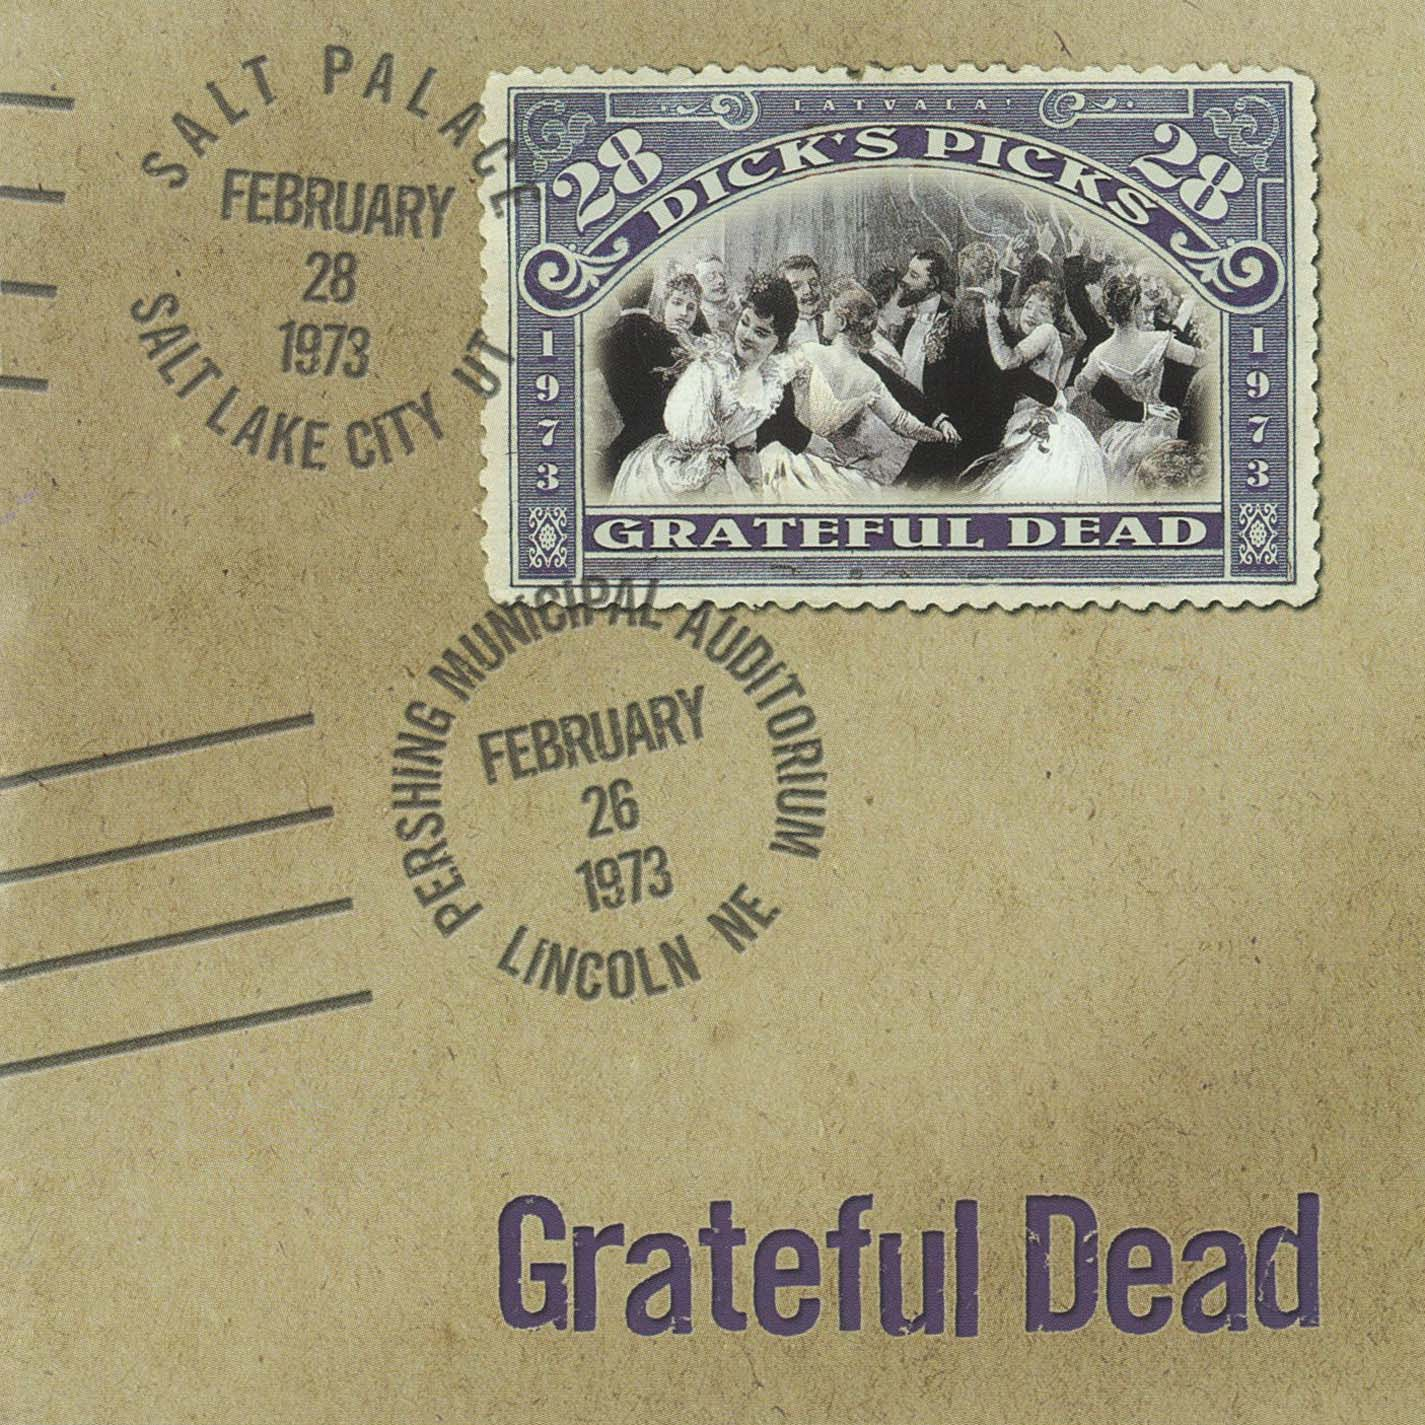 Grateful Dead Dick's Picks 28 album cover artwork